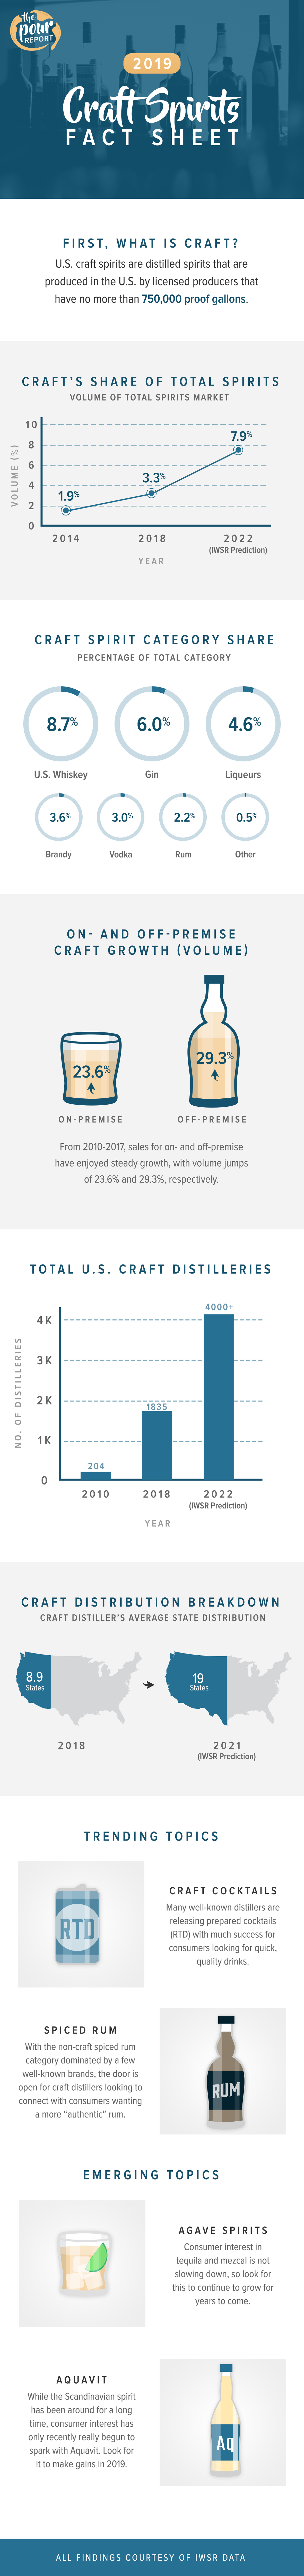 2019 craft spirits fact sheet infographic